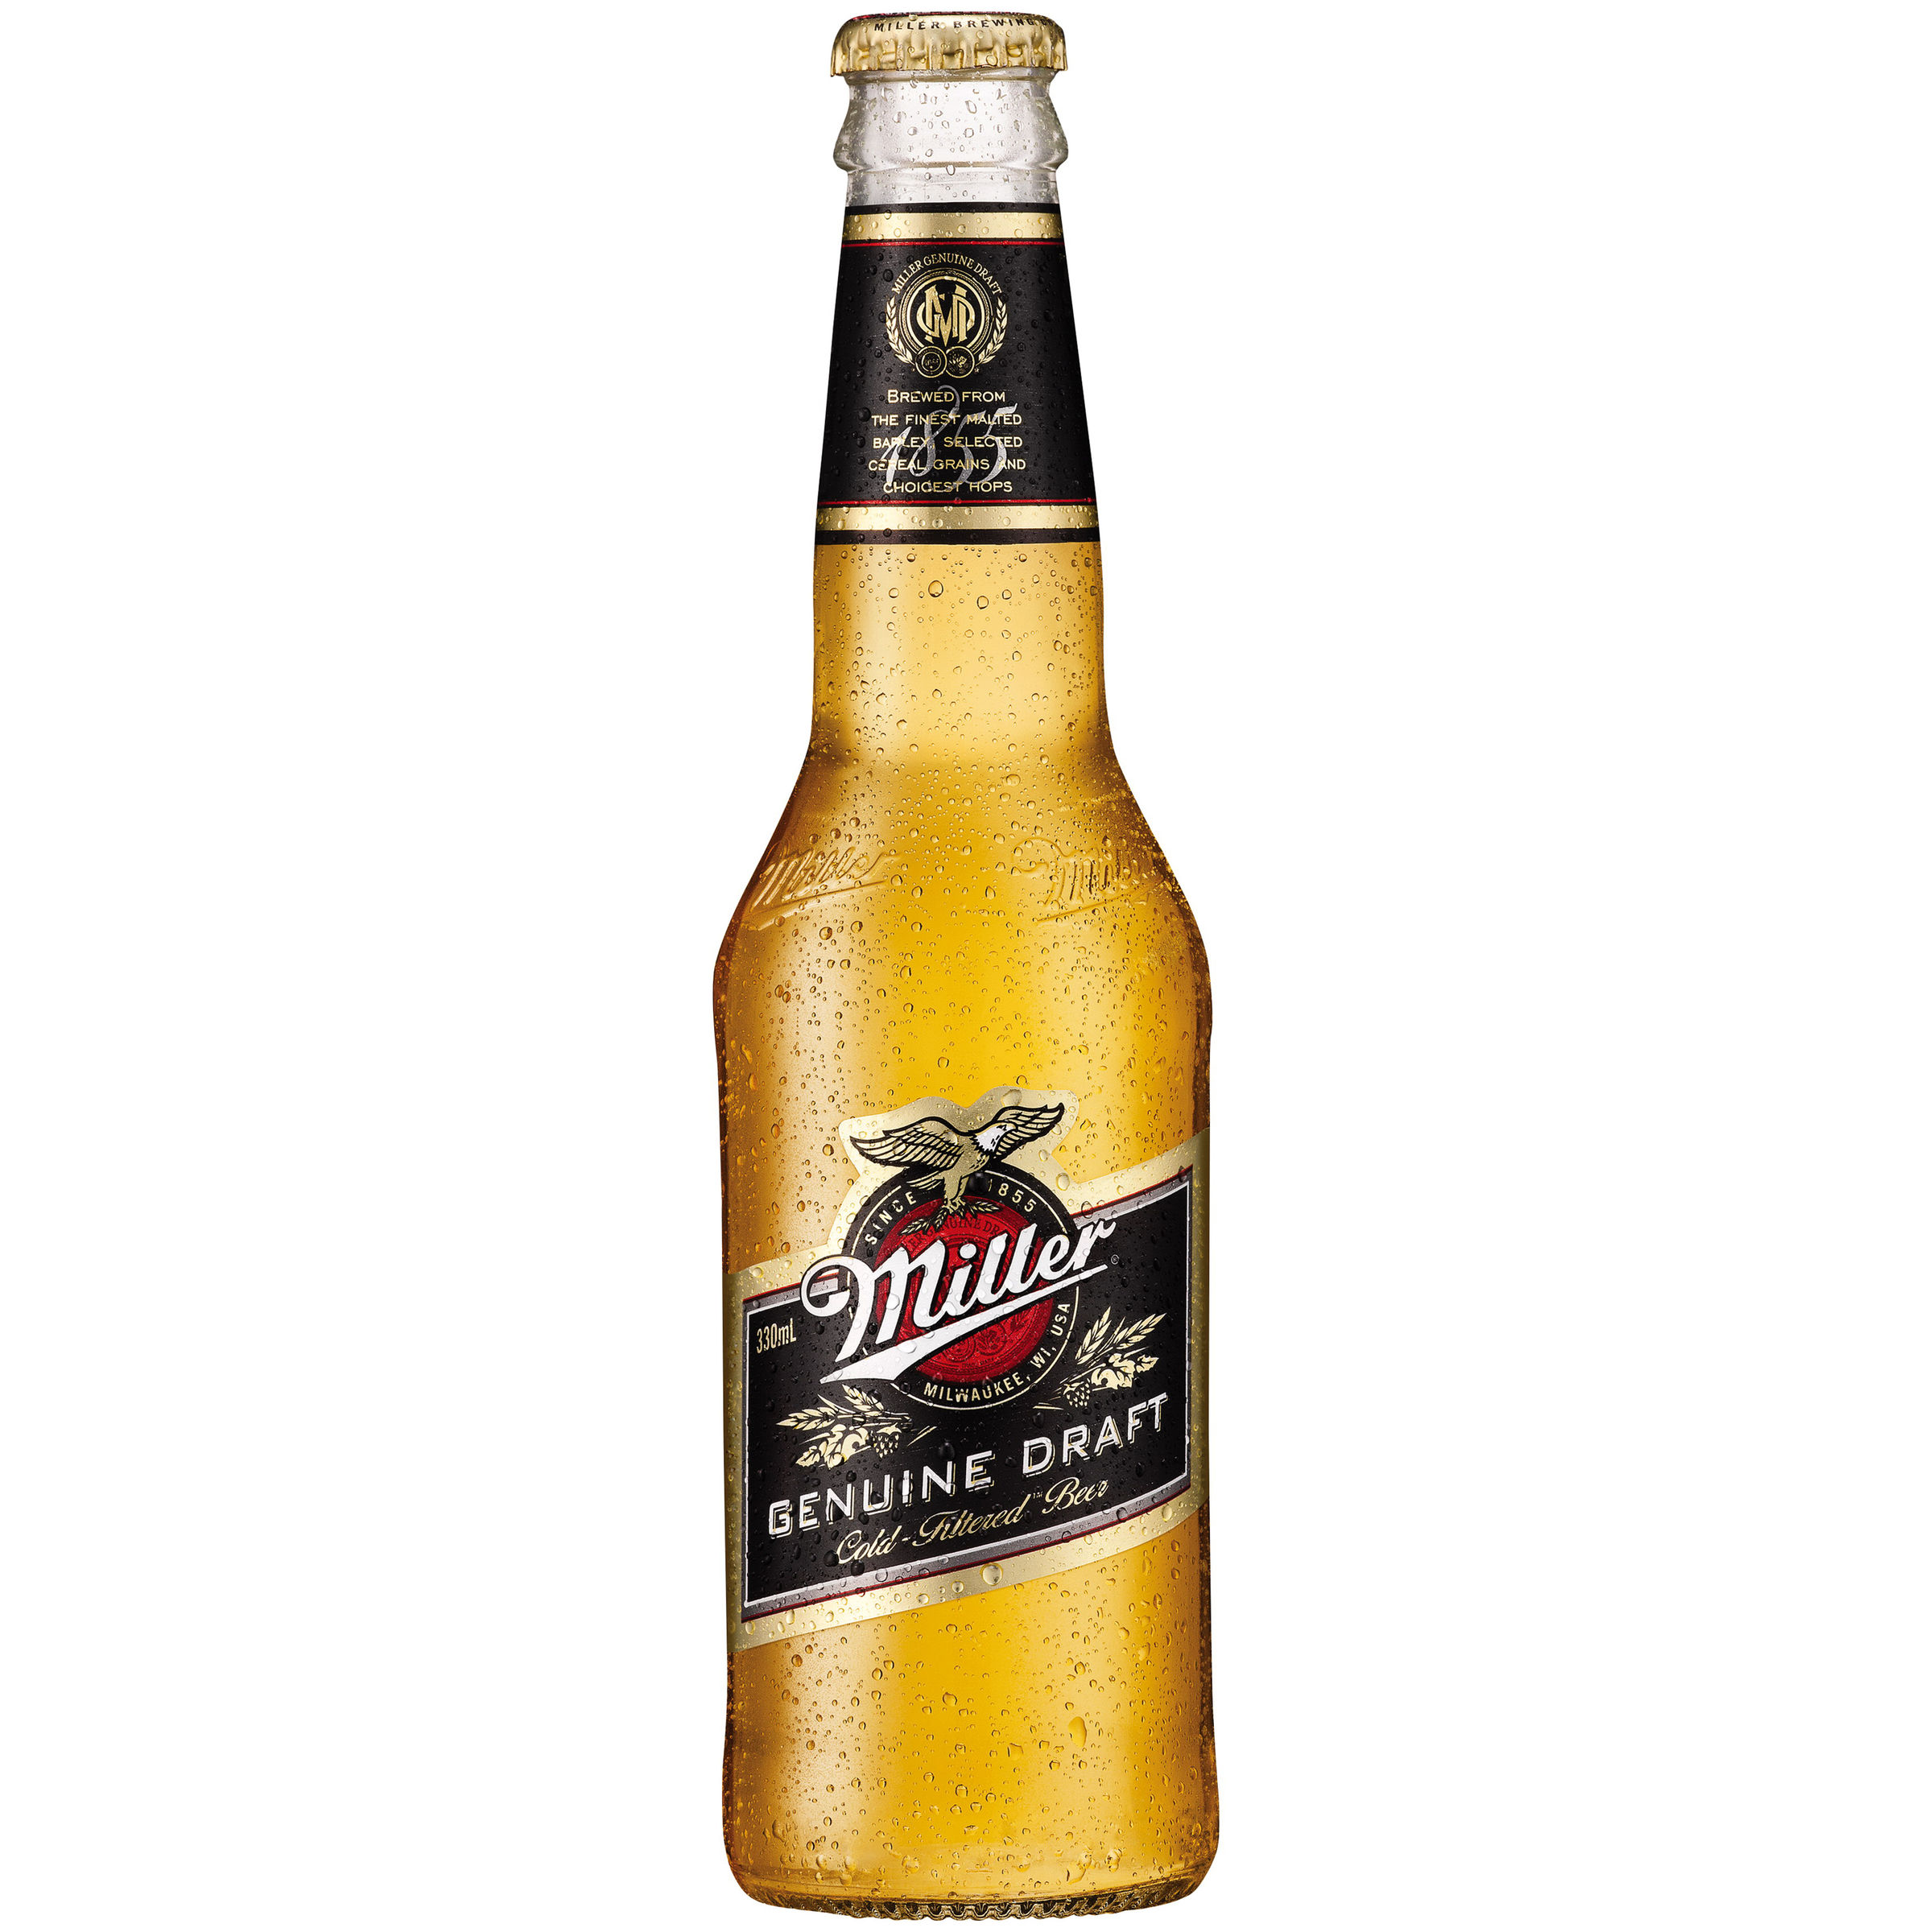 Miller Genuine Draft Bottle Image